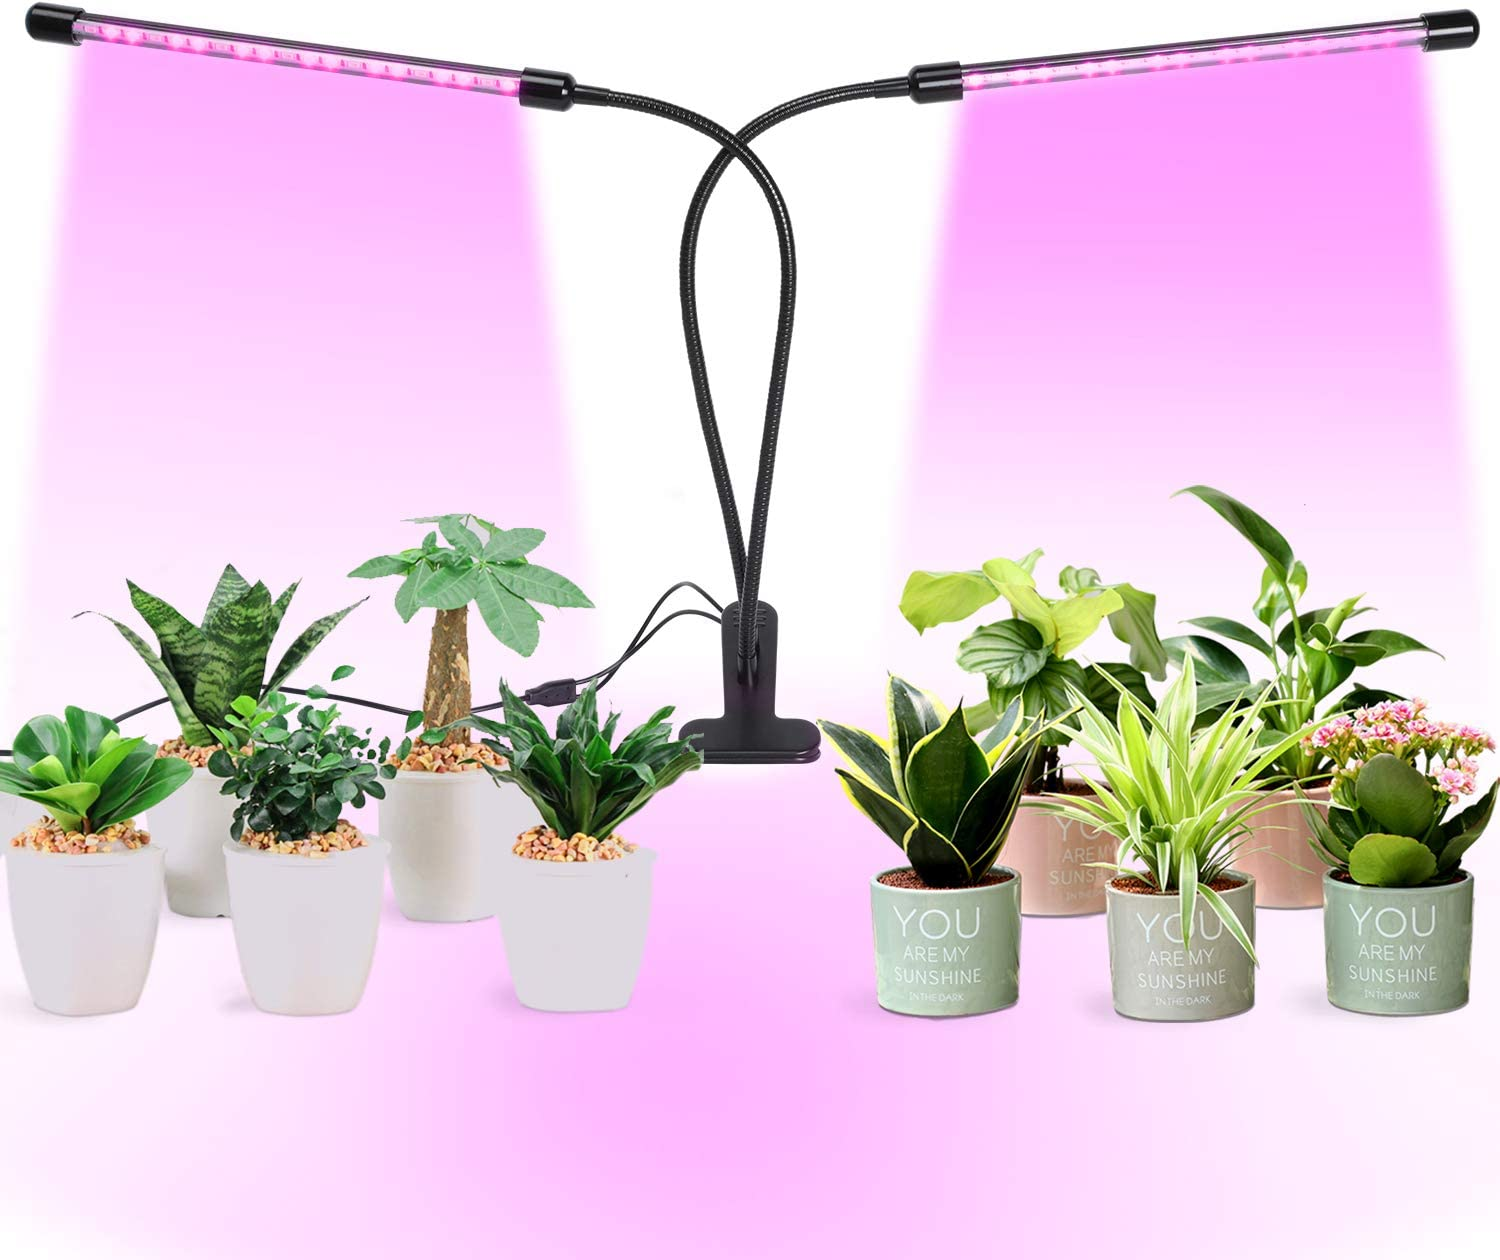 MUCH 40 LED Grow Light, Cycle Timing 20W Dual Head Grow Light, 5 Dimmable Levels Plant Grow Lights for Indoor Plants with Red Blue Spectrum, Adjustable Gooseneck, 3 Switch Modes